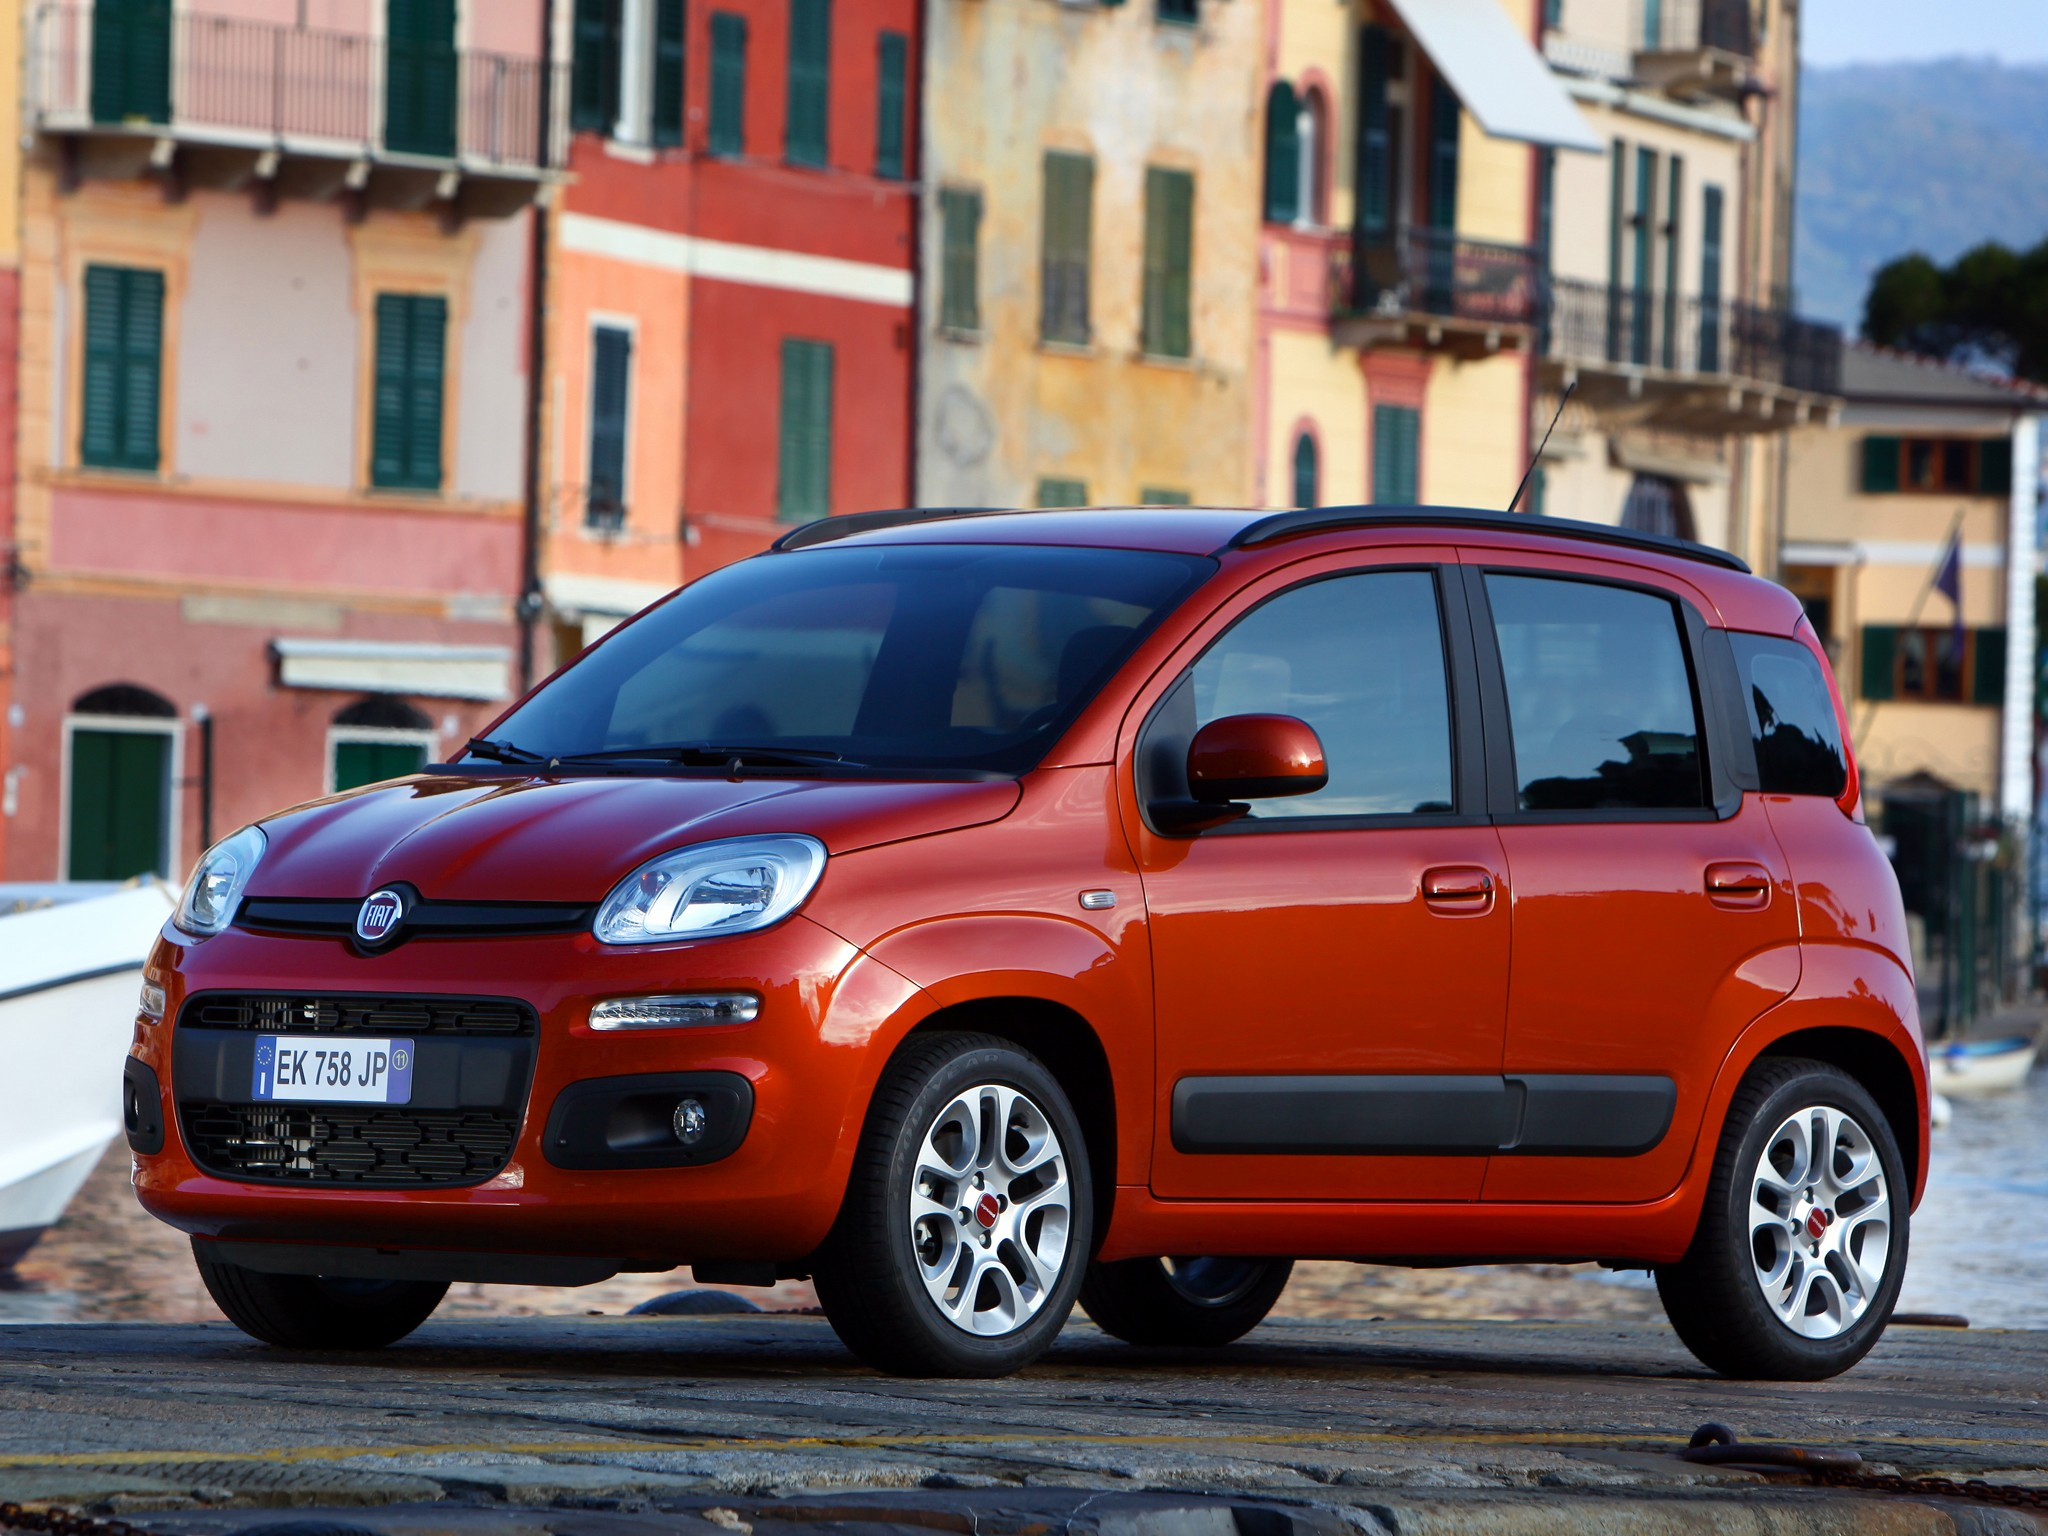 Fiat Panda Specs Photos 2011 2012 2013 2014 2015 2016 2017 2018 2019 2020 2021 Autoevolution